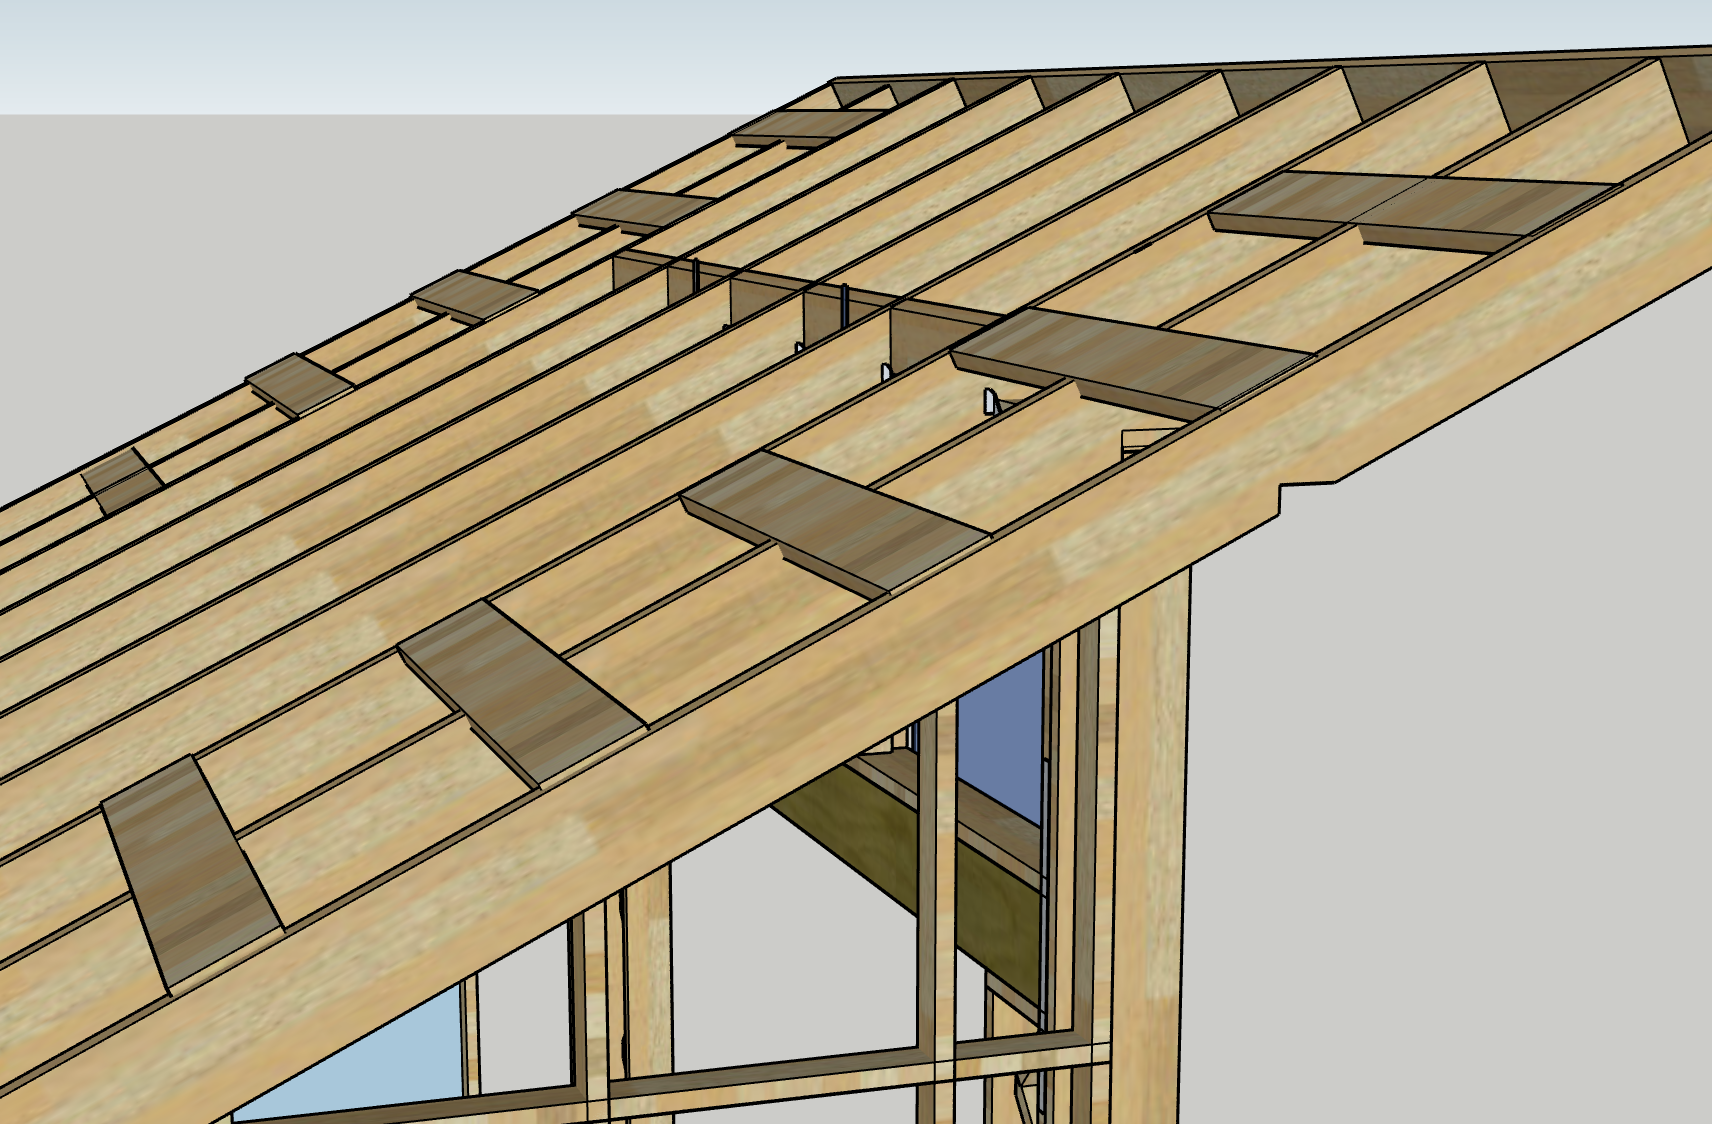 Shed / workshop framing design--is it too ambitious?-screen-shot-2020-04-26-1.09.29-pm.png